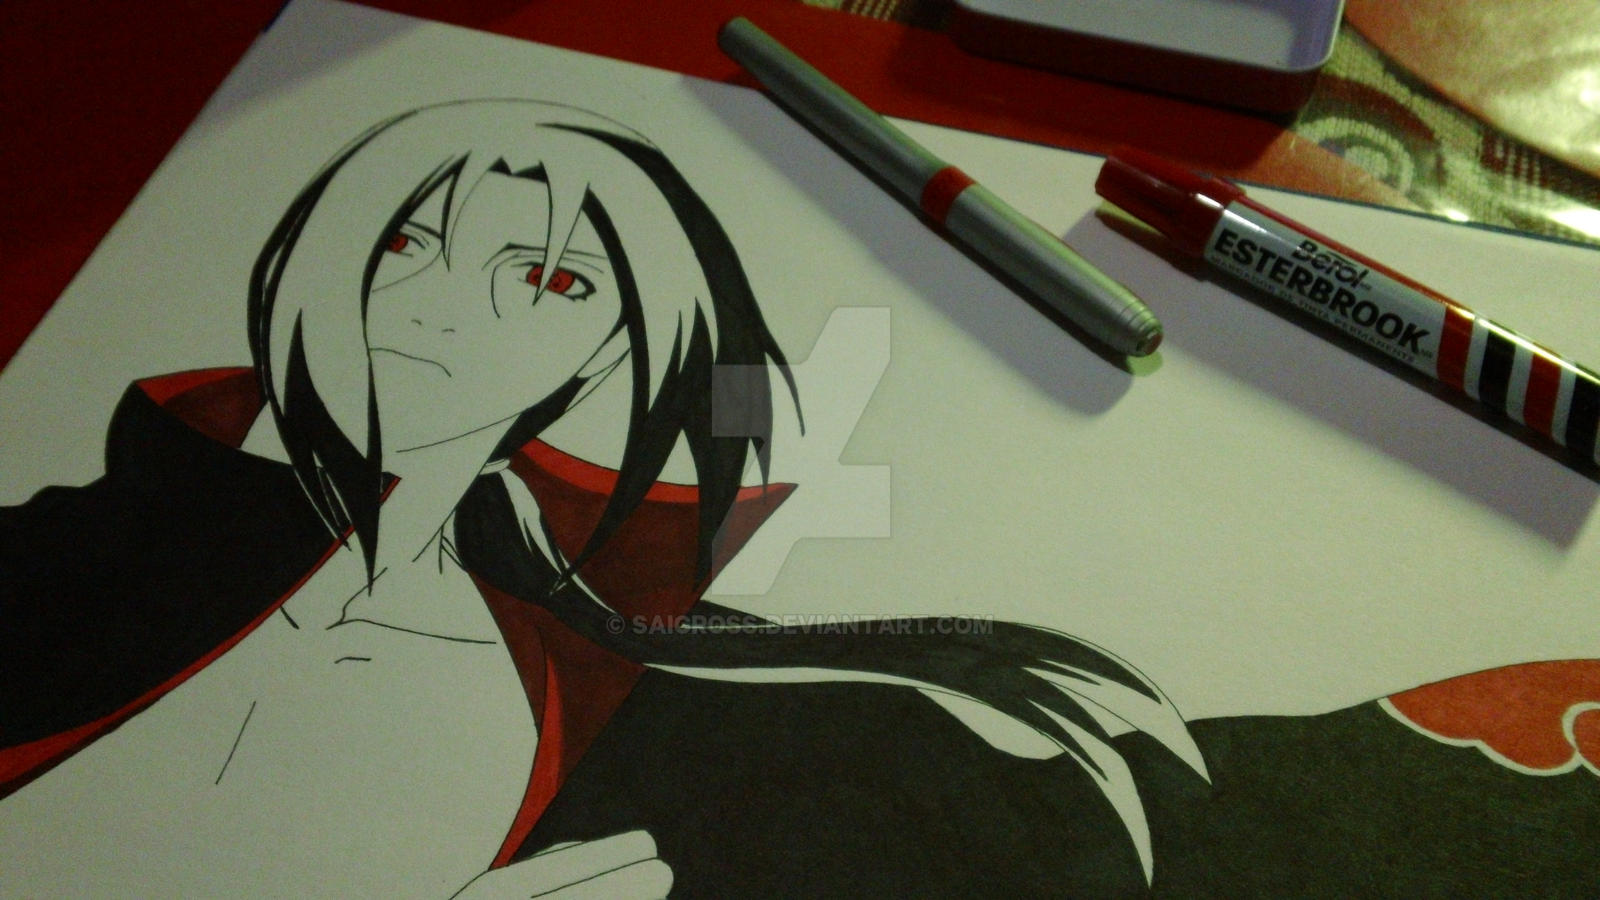 itachi uchiha drawing 2 by saicross itachi uchiha drawing 2 by saicross